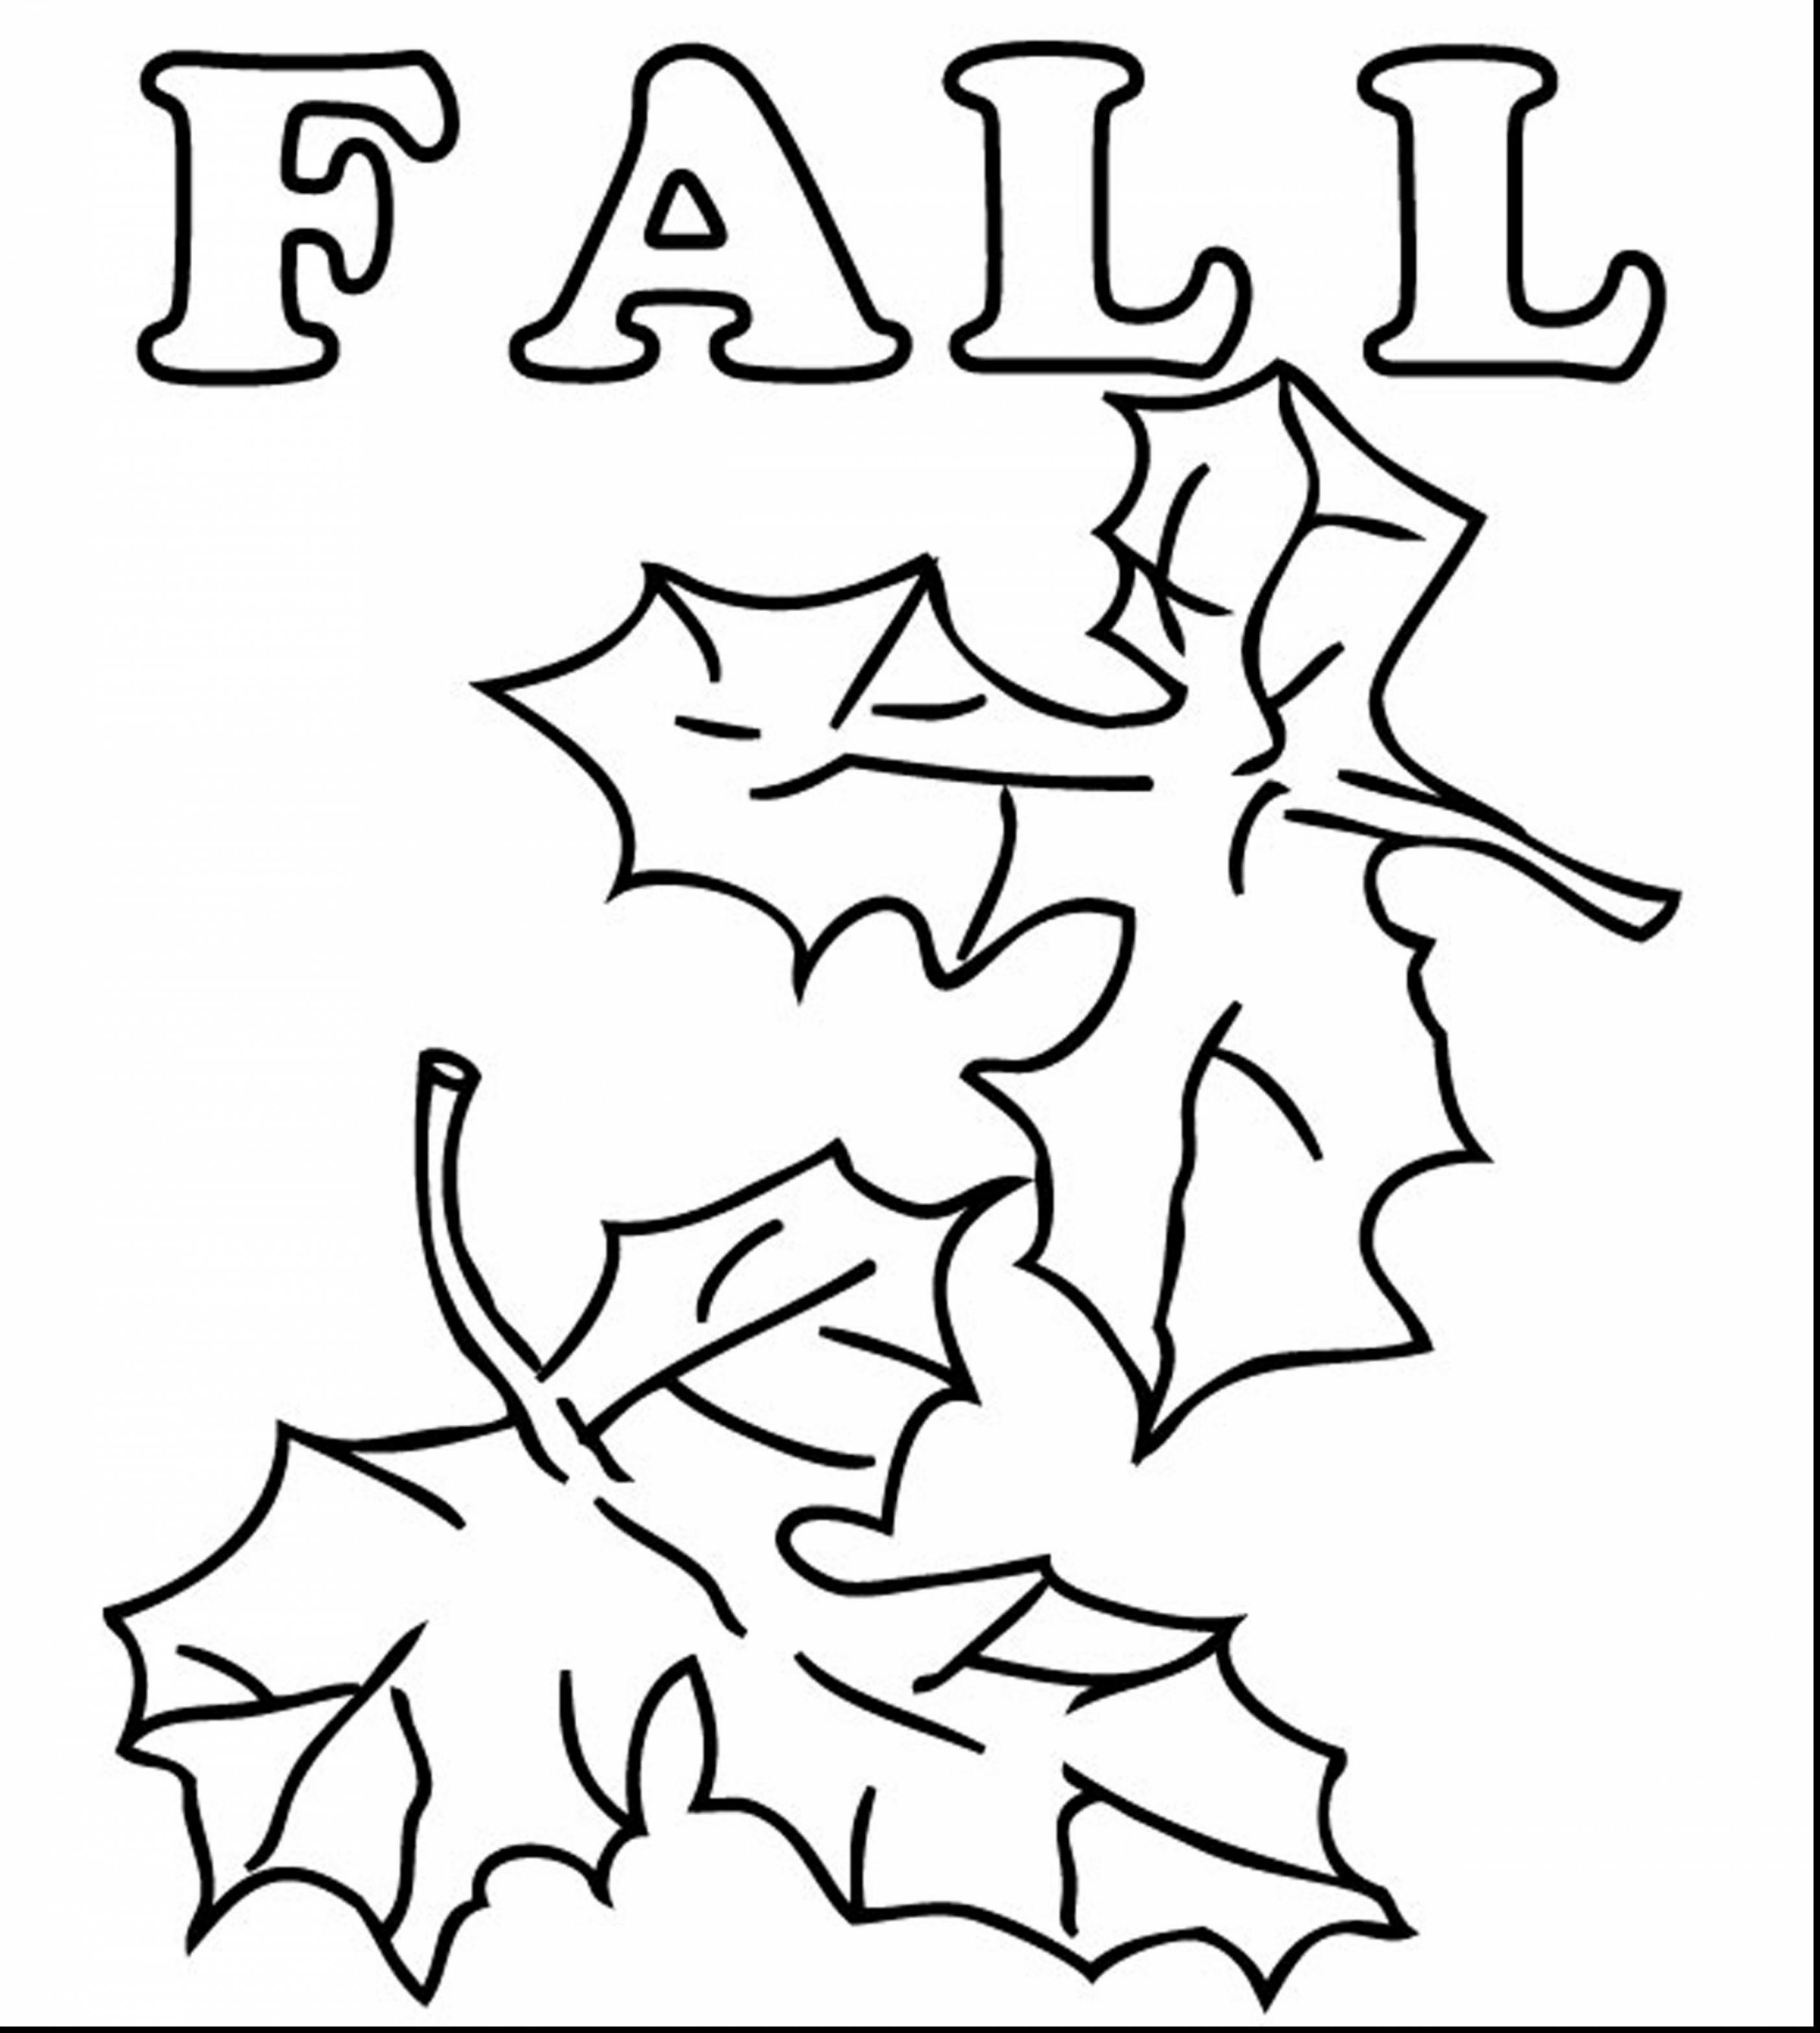 2805x3133 Printable Incredible Fall Landscape Coloring Page With Fall